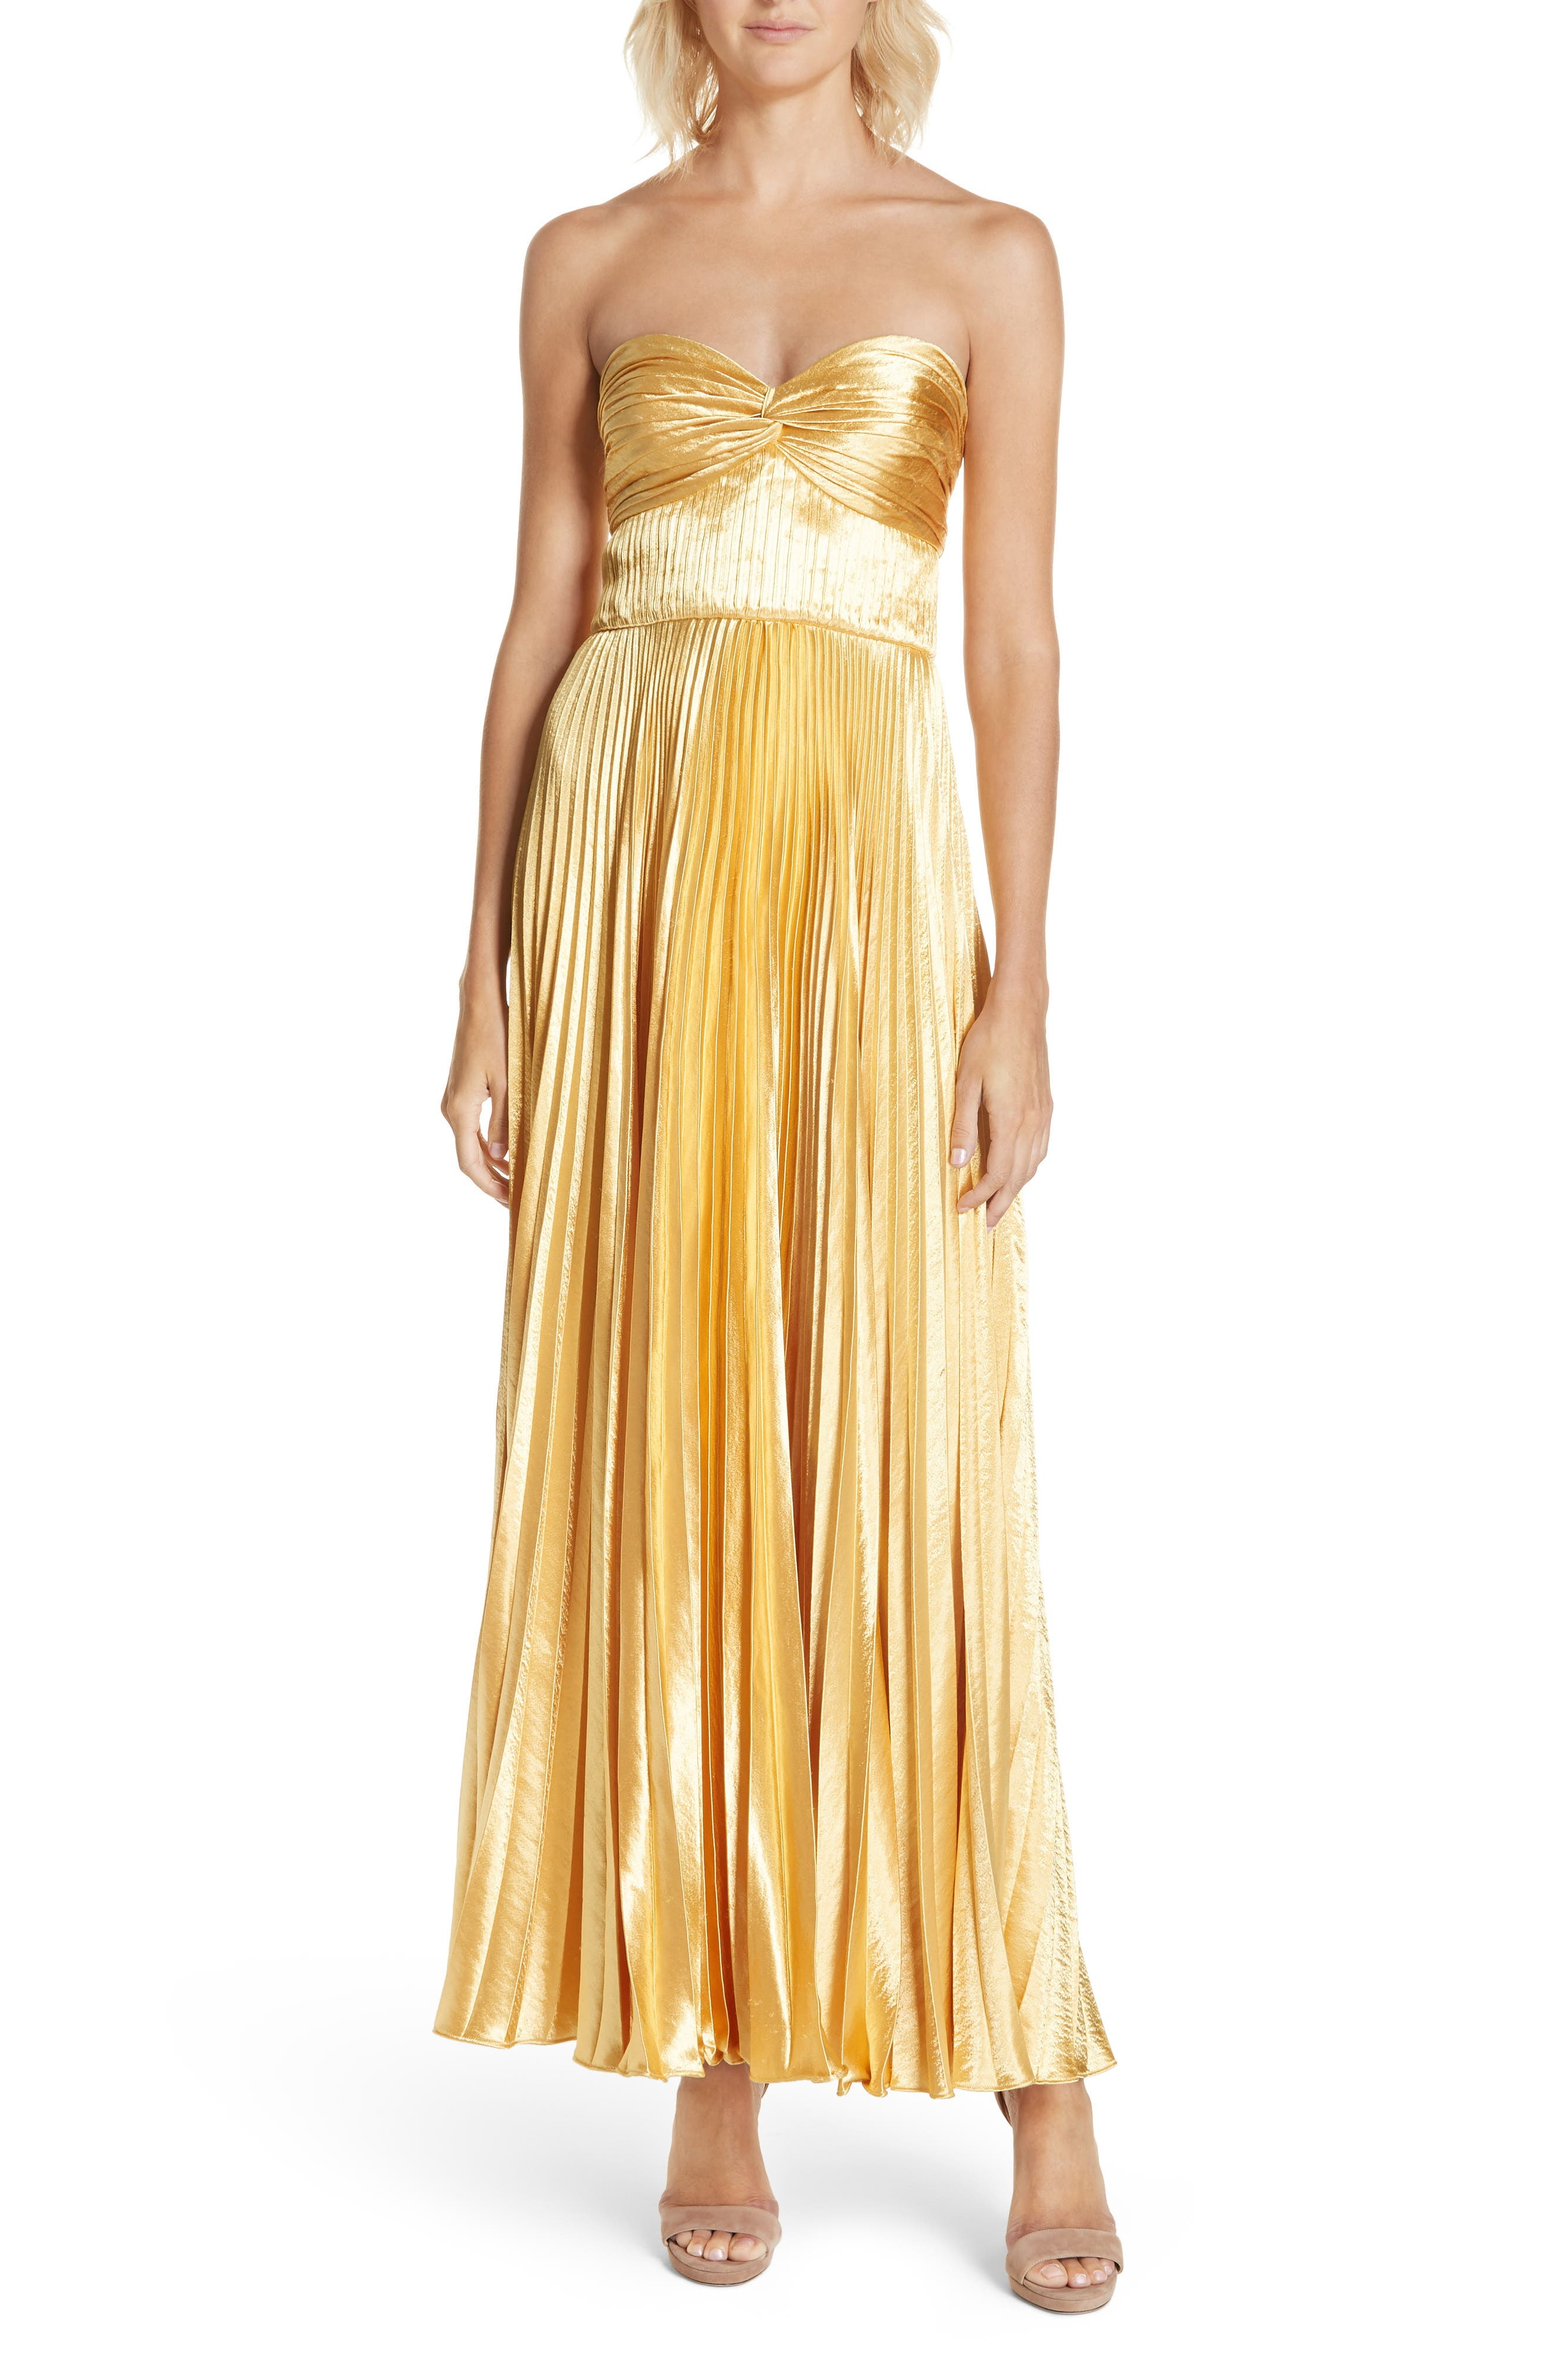 AMUR Belle Pleated Satin Strapless Gown in Gold